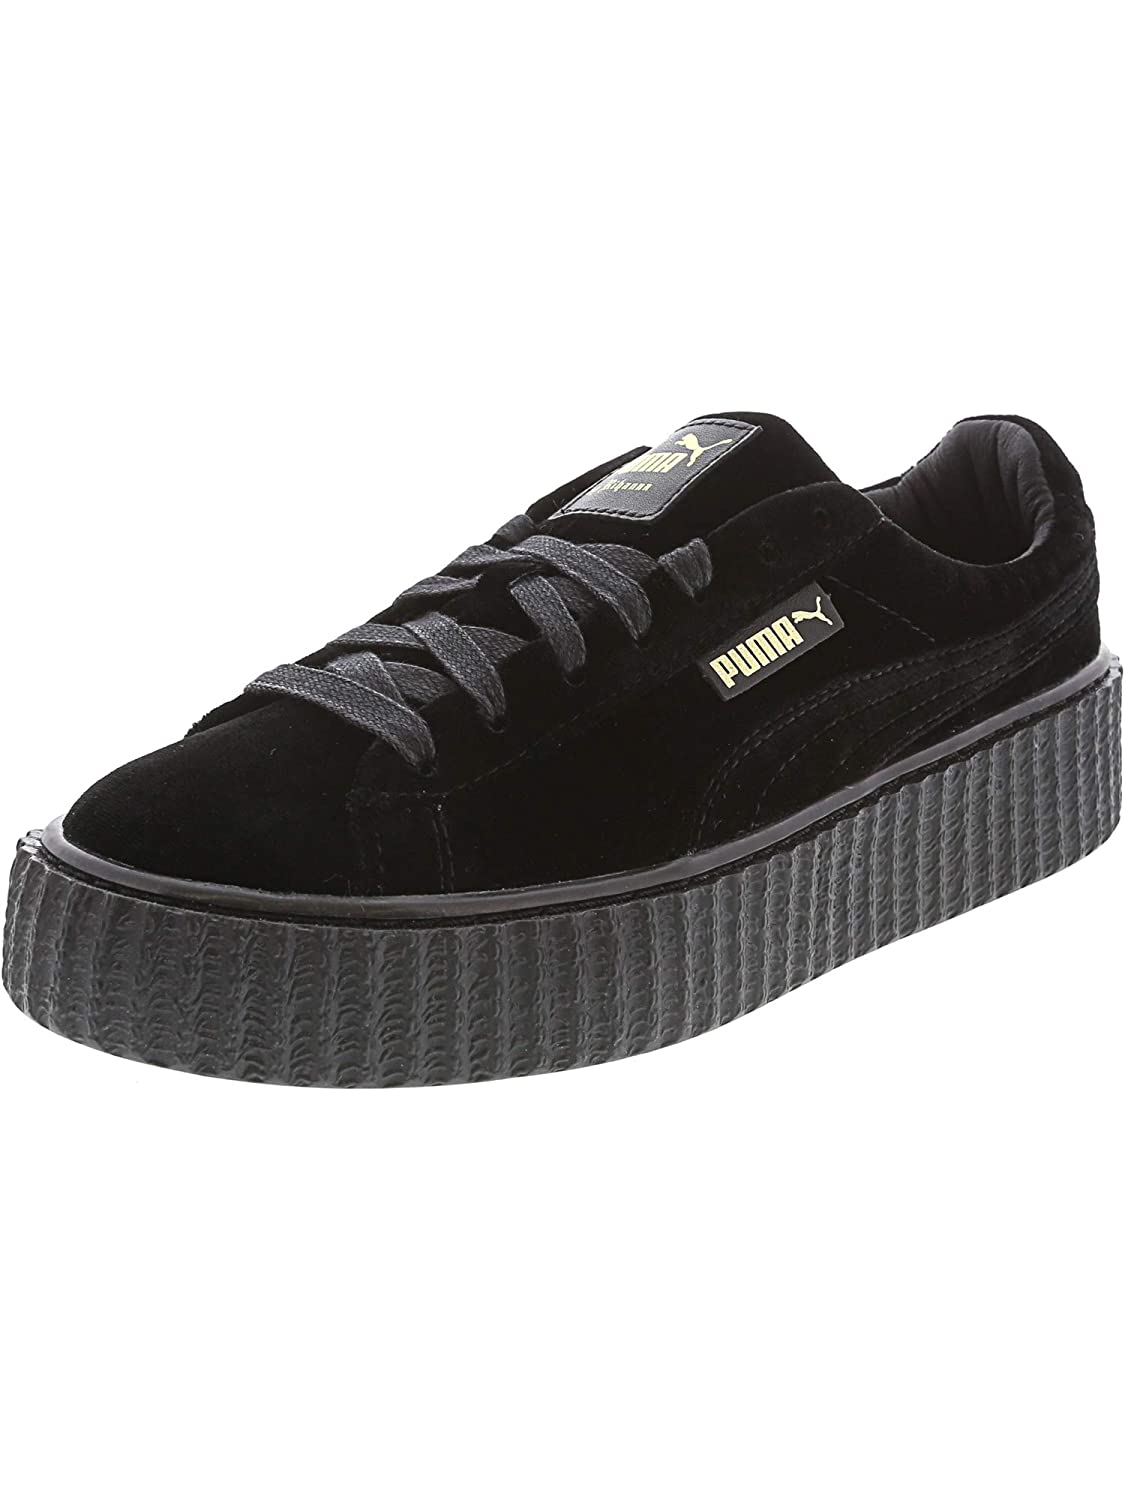 outlet store 24cd9 84c66 Puma Creeper Velvet